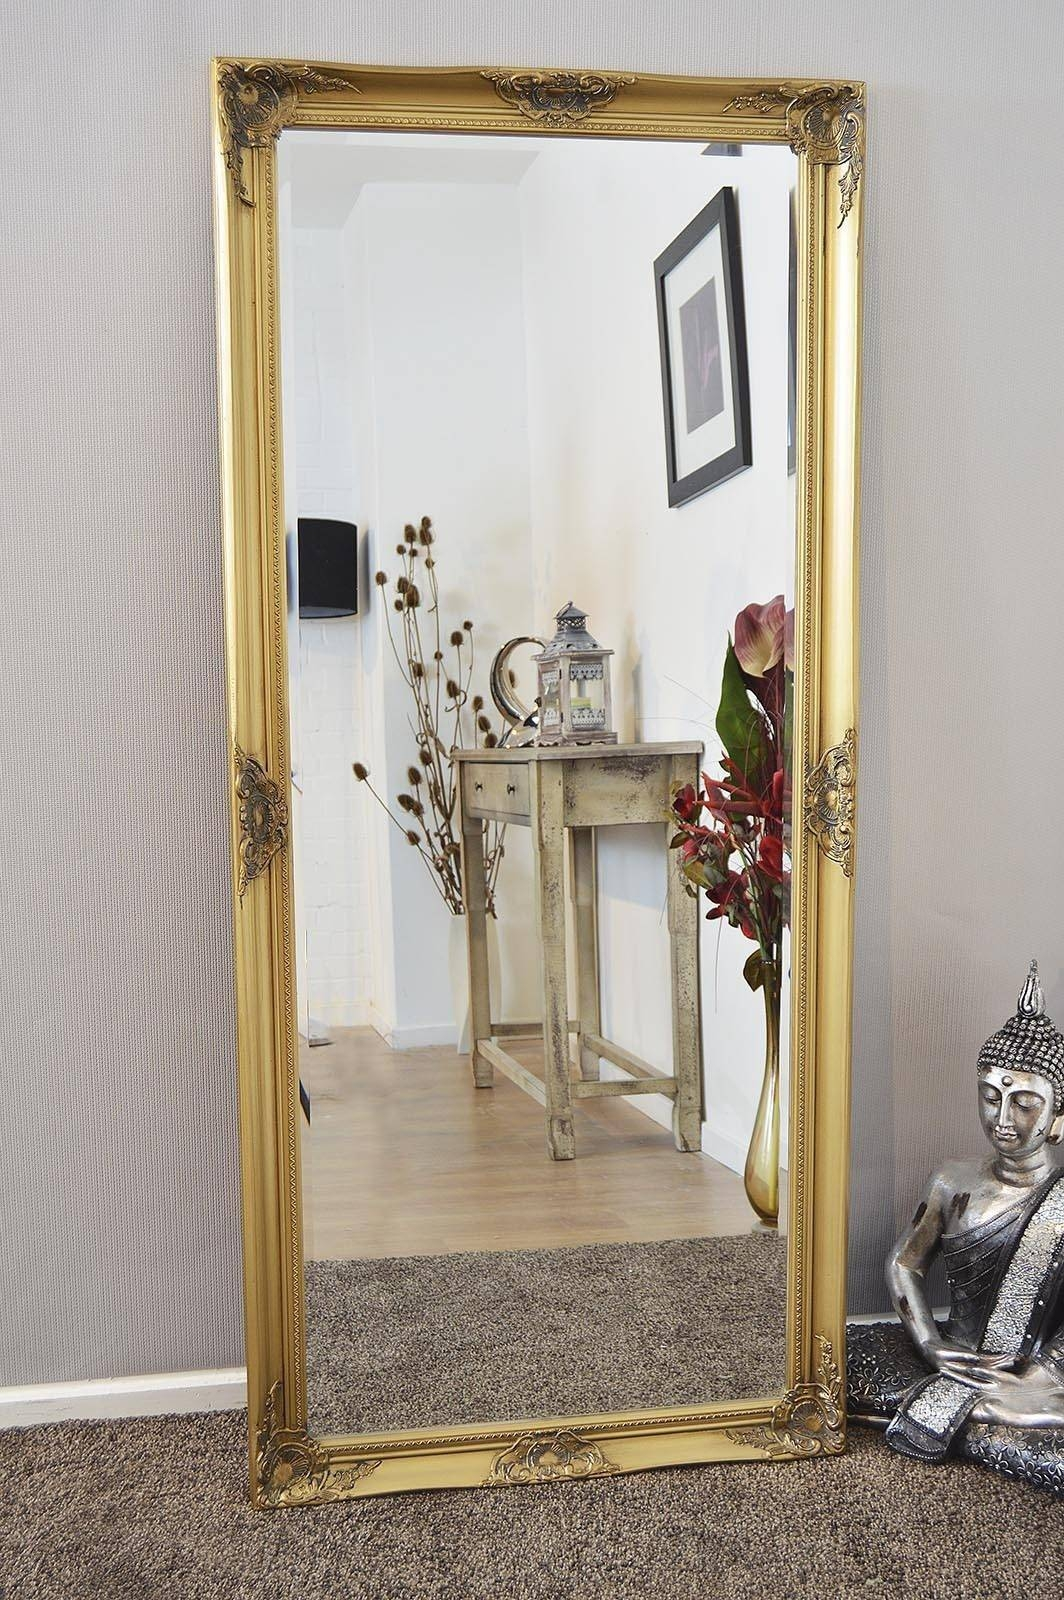 Extra Large Floor Standing Mirrors | Best Decor Things inside Large Floor Standing Mirrors (Image 8 of 25)